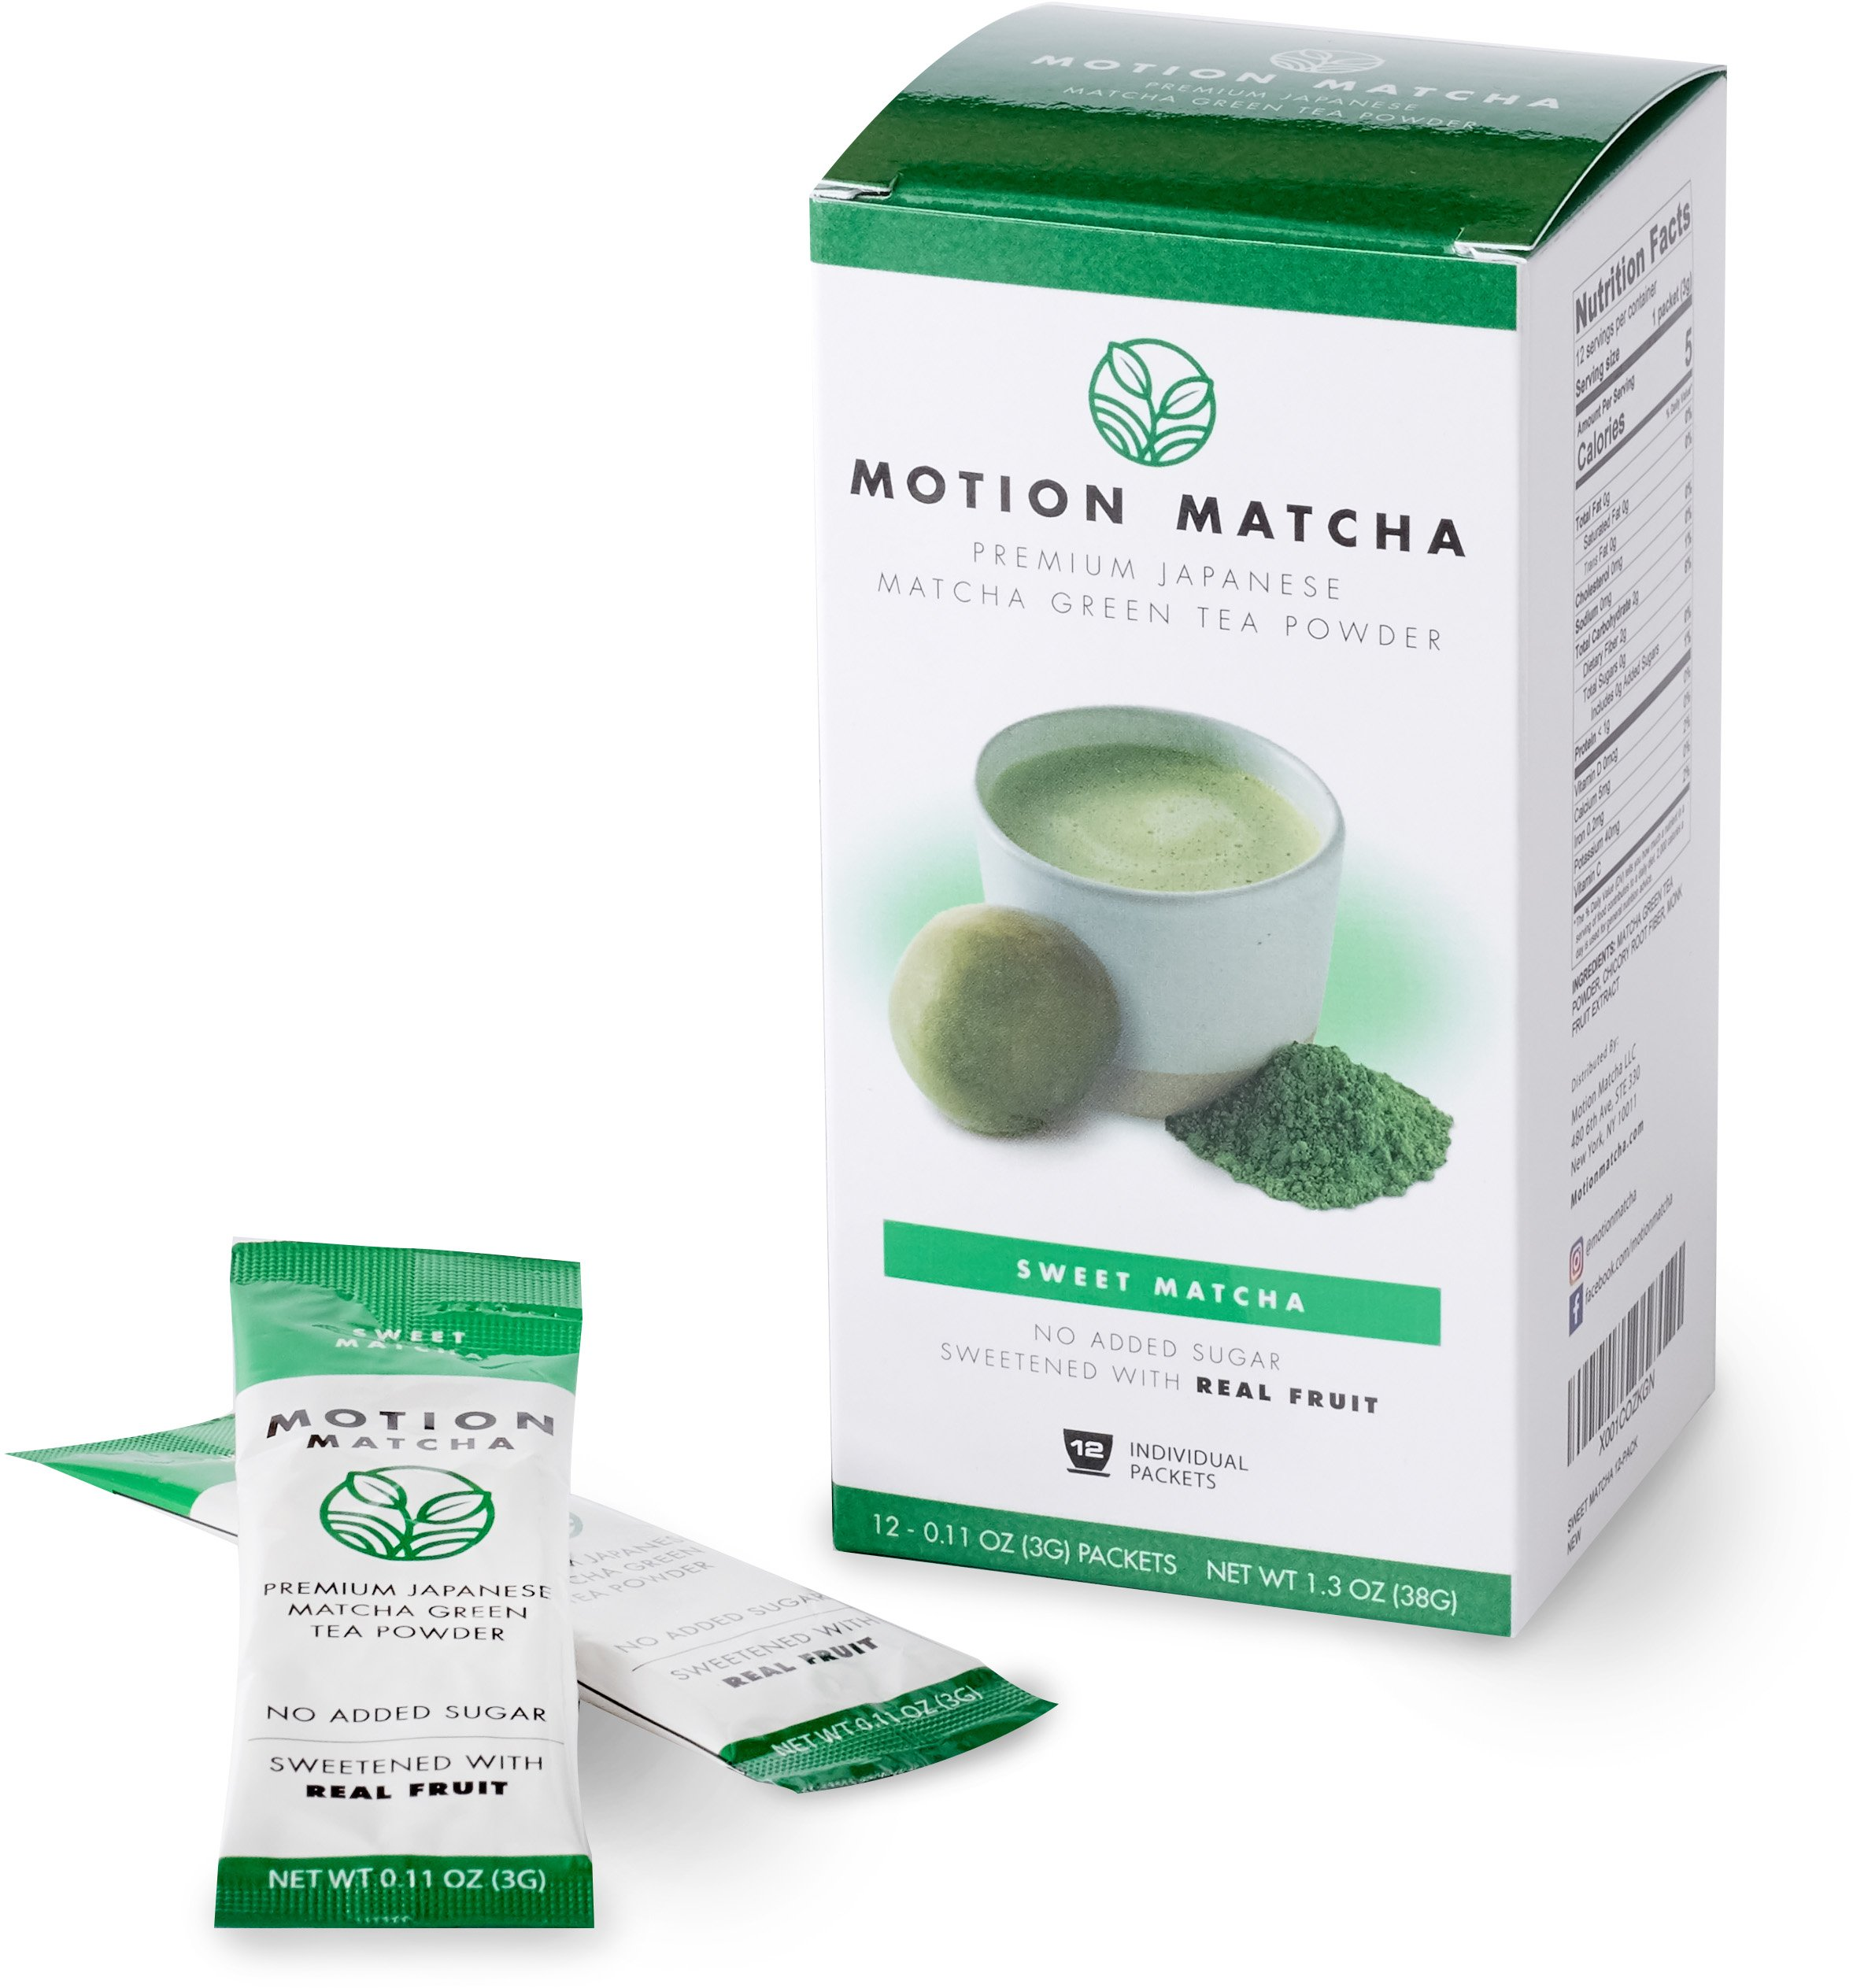 Sweetened Premium Matcha Green Tea Powder in Individual Packets - with Monk Fruit - No Added Sugar (Sweet Matcha) (12 single serving packets)